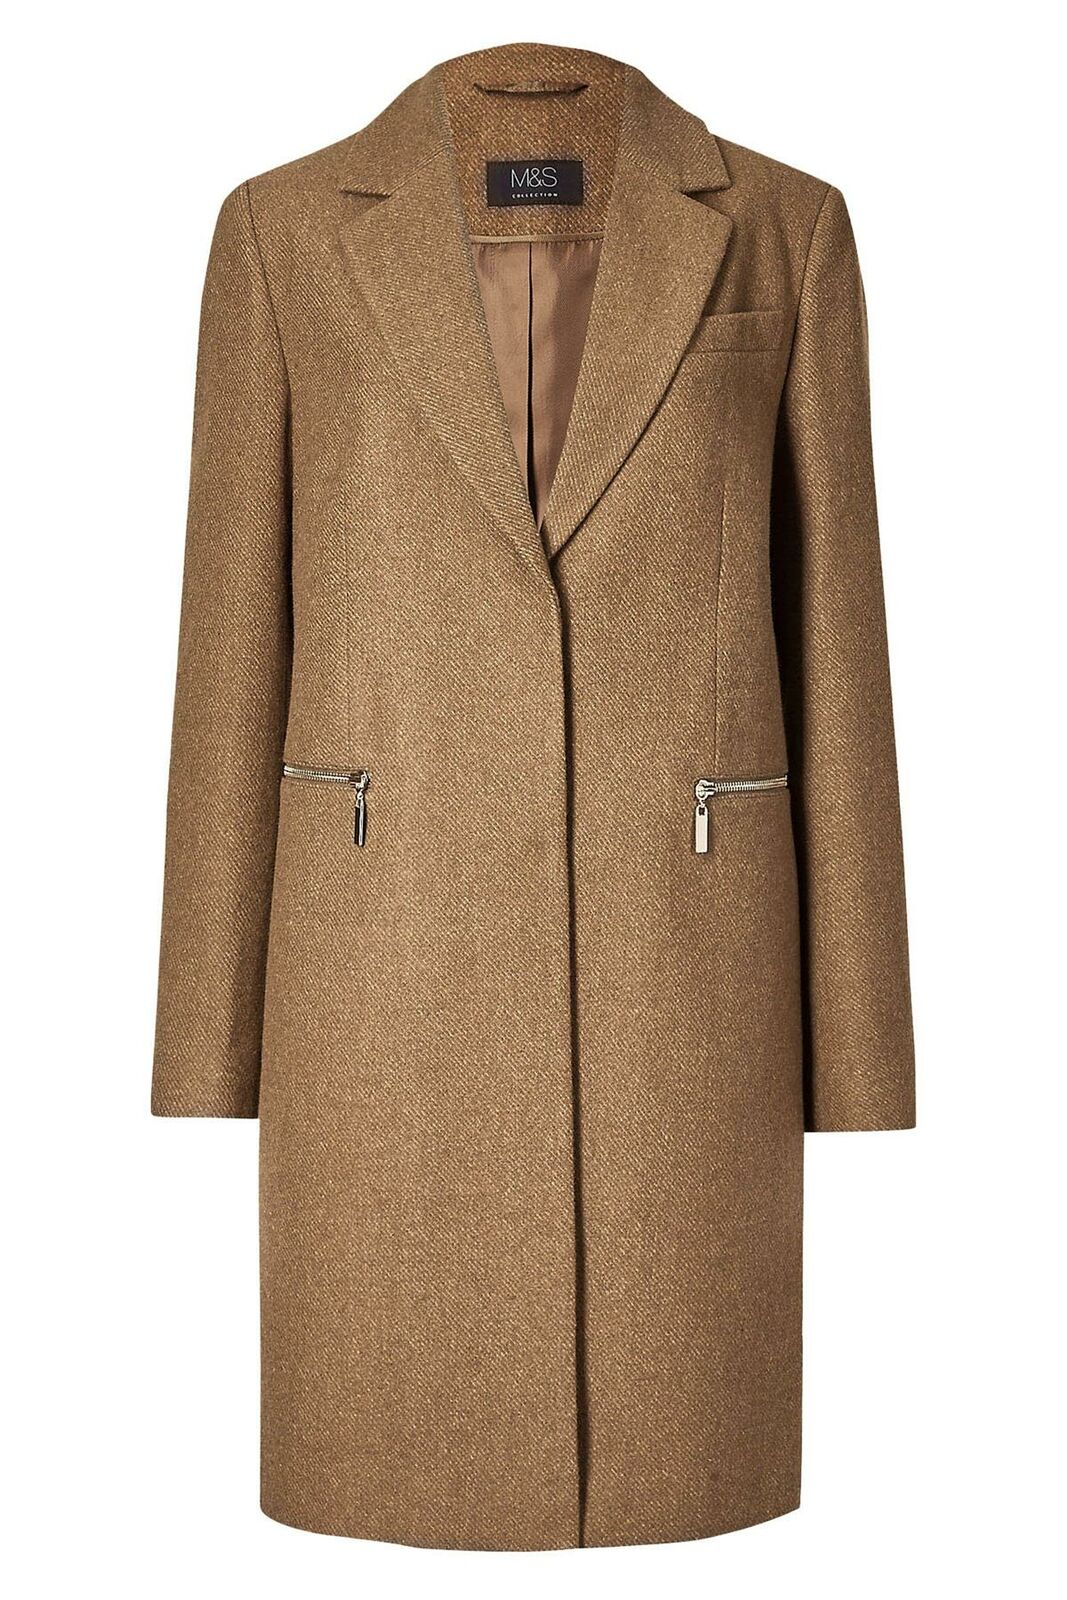 M-amp-S-Wool-Blend-Single-Breasted-Pink-Brown-Winter-Coat-Holly-Willoughby-Size-6-24 thumbnail 24